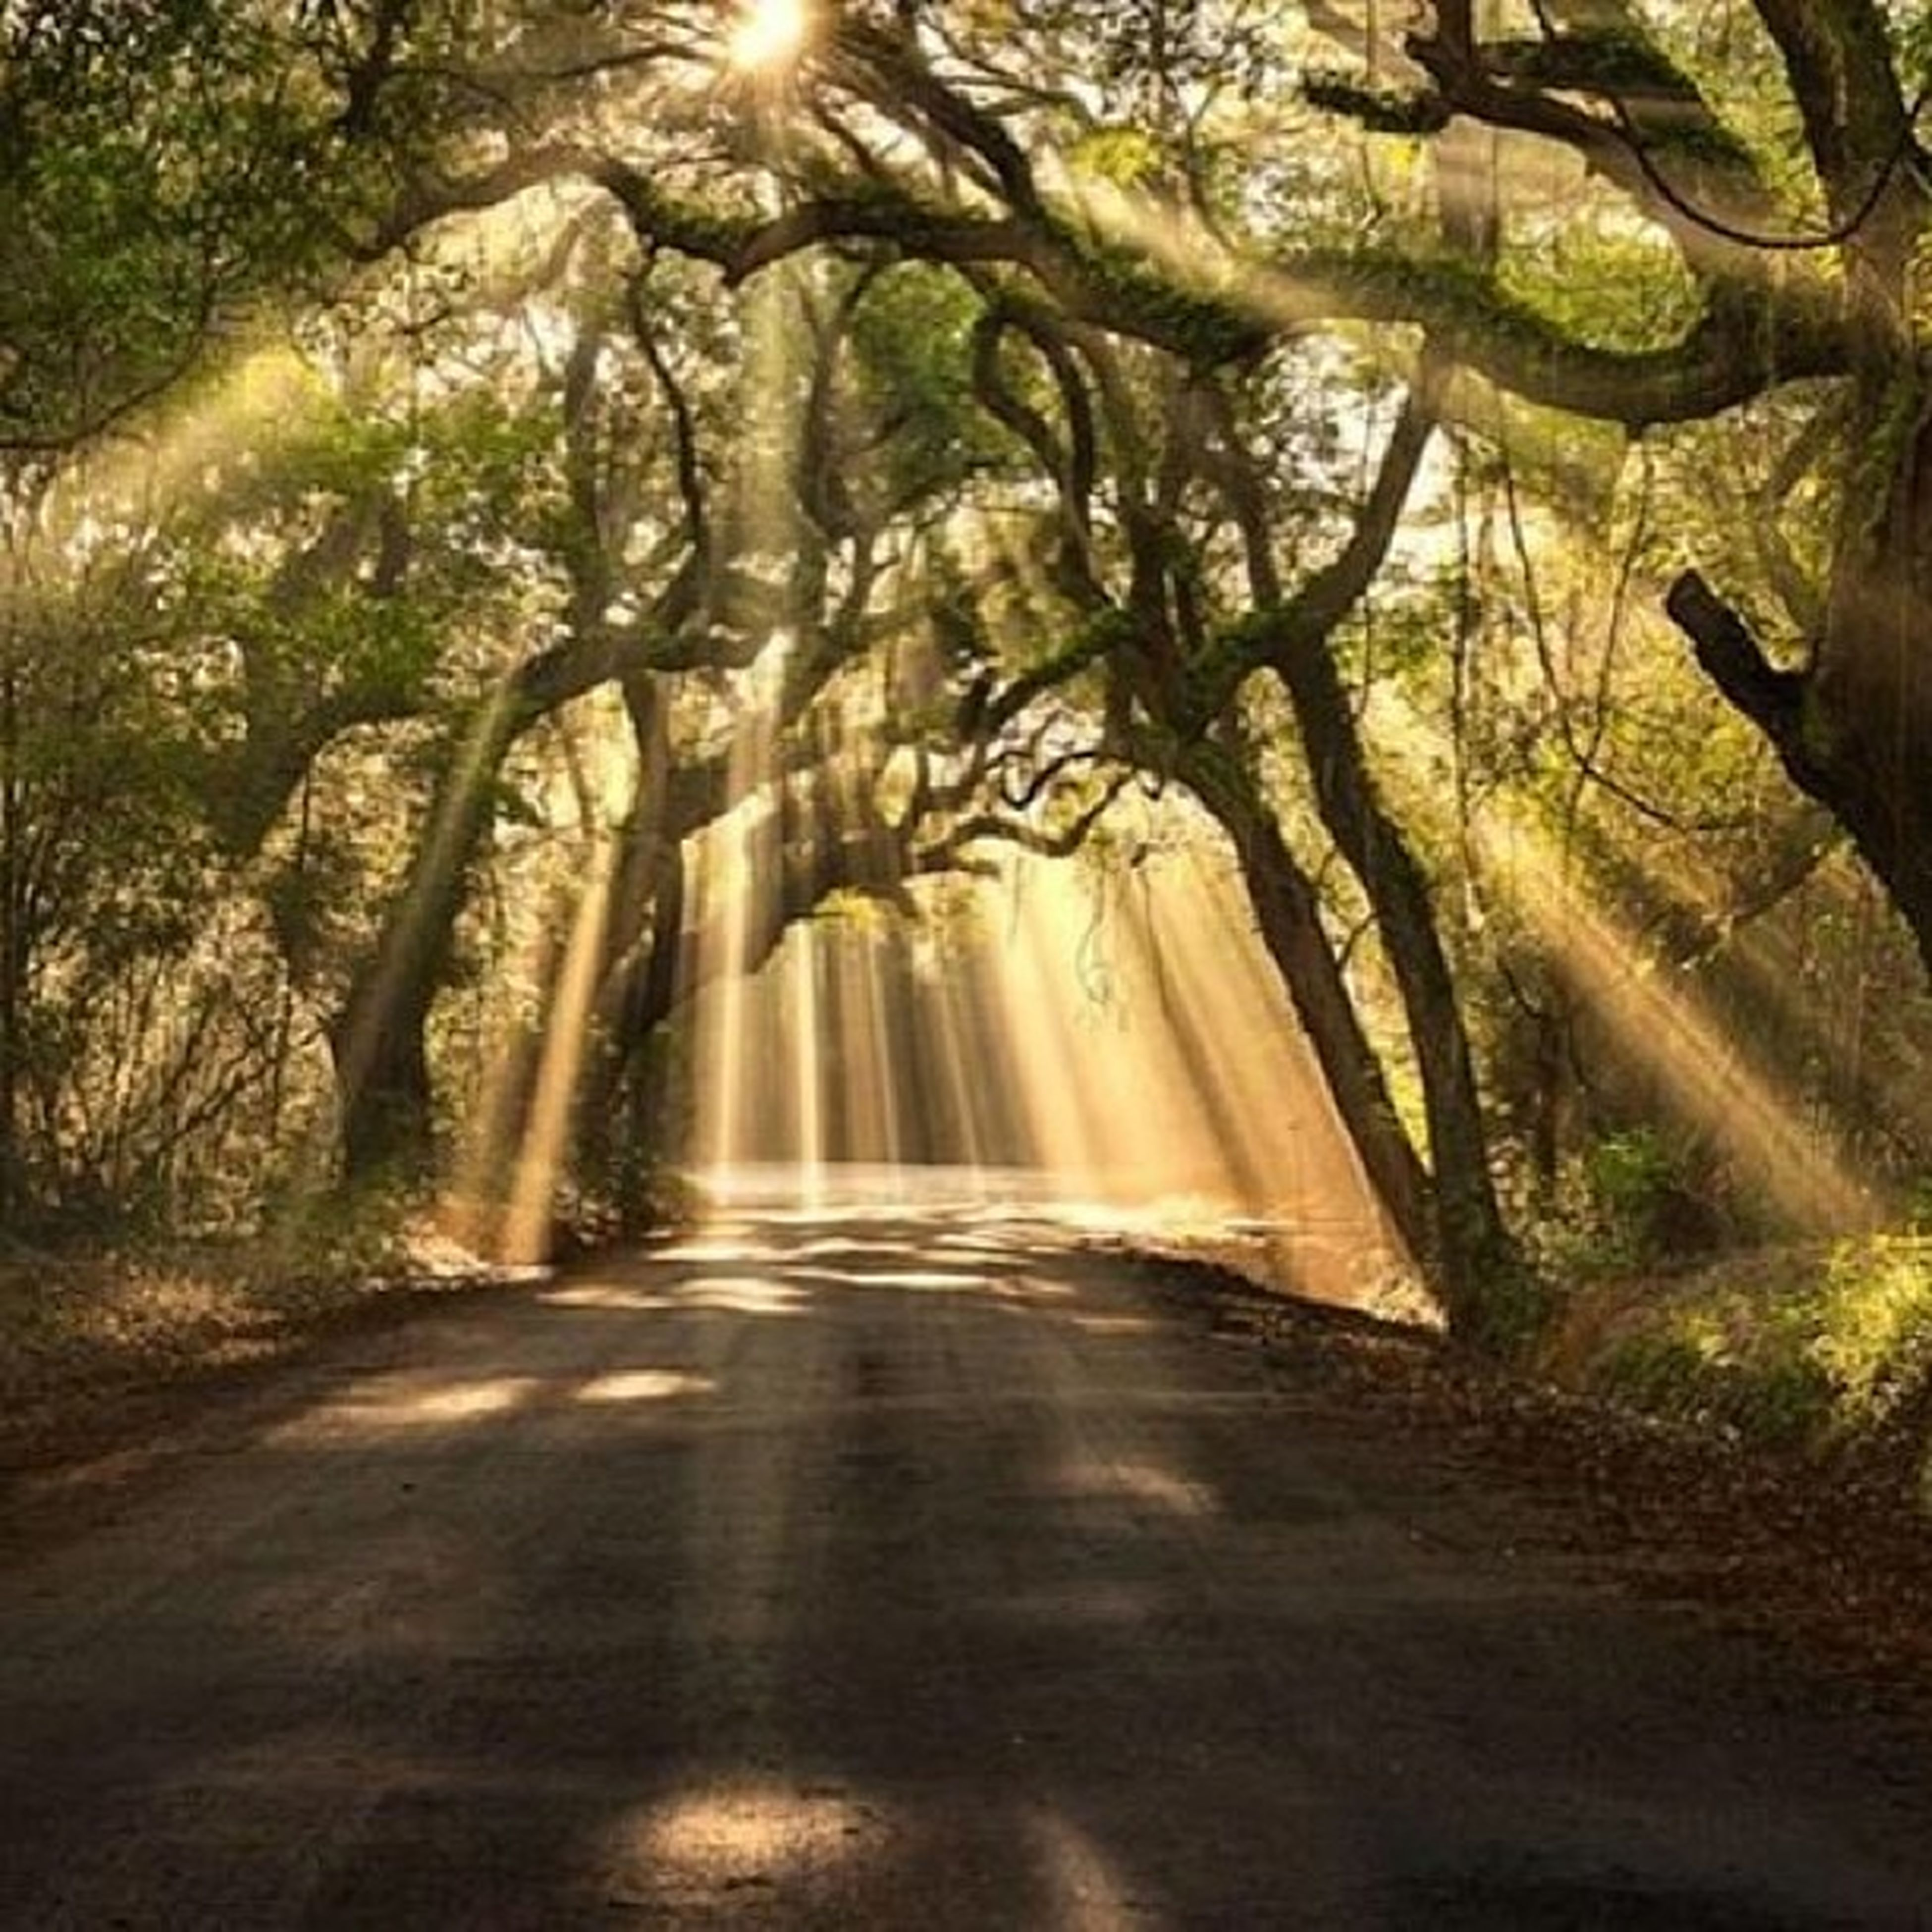 tree, forest, the way forward, tranquility, sunlight, nature, tranquil scene, tree trunk, growth, beauty in nature, sunbeam, scenics, road, branch, woodland, day, non-urban scene, outdoors, no people, transportation